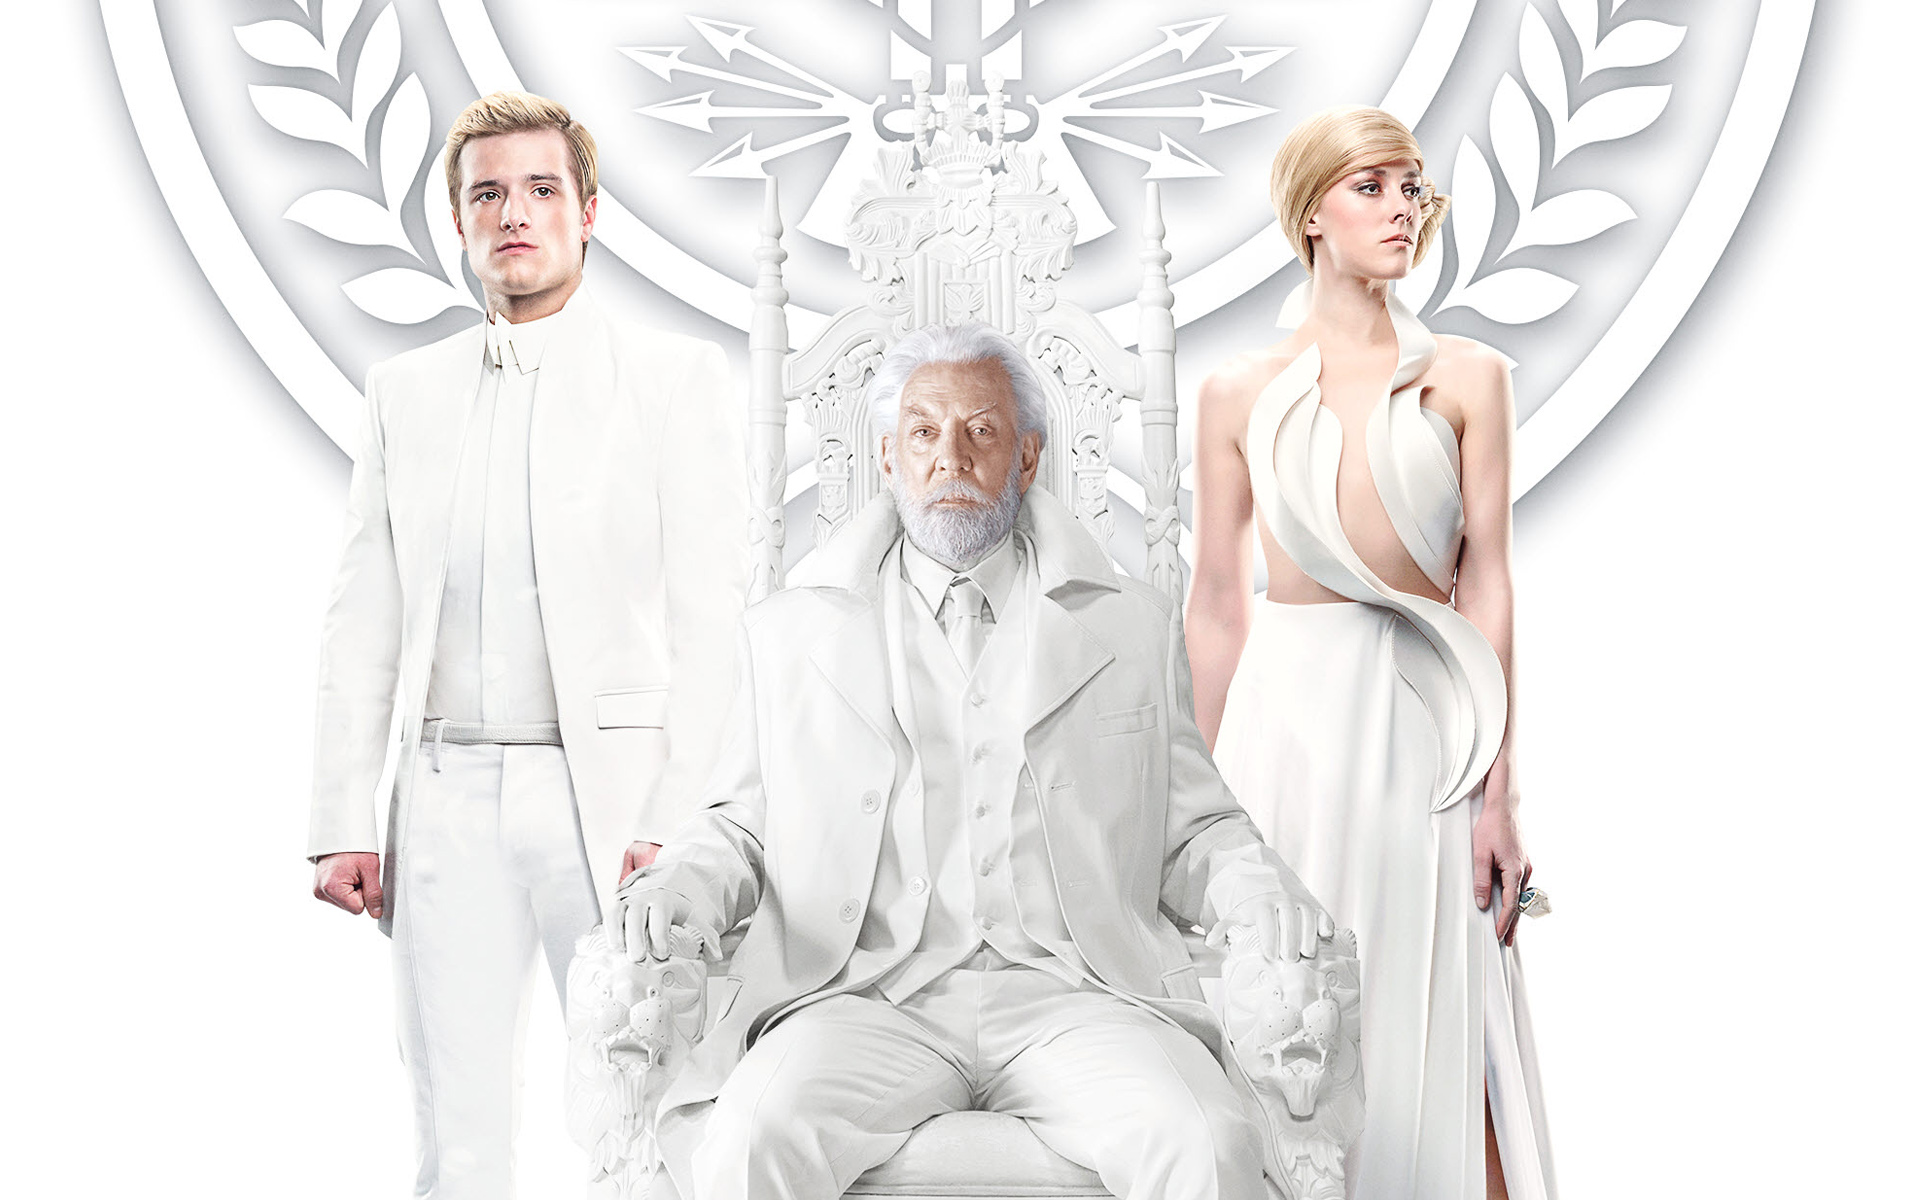 HD Wallpapers The Hunger Games Mockingjay Part 1 2014